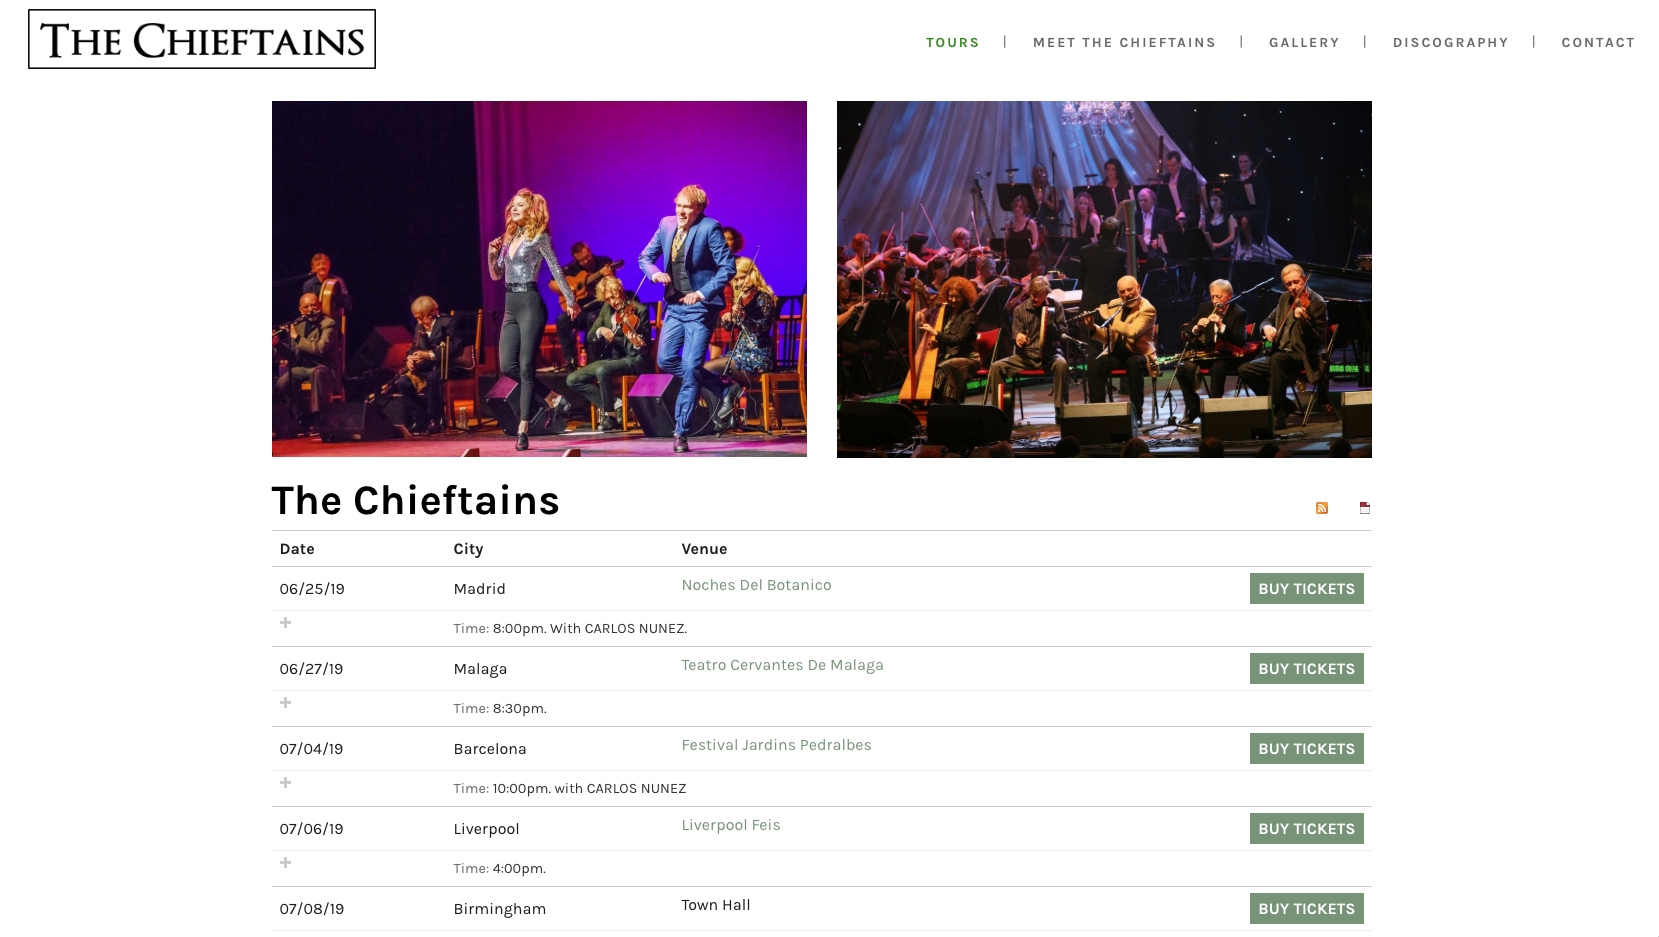 The Chieftains website